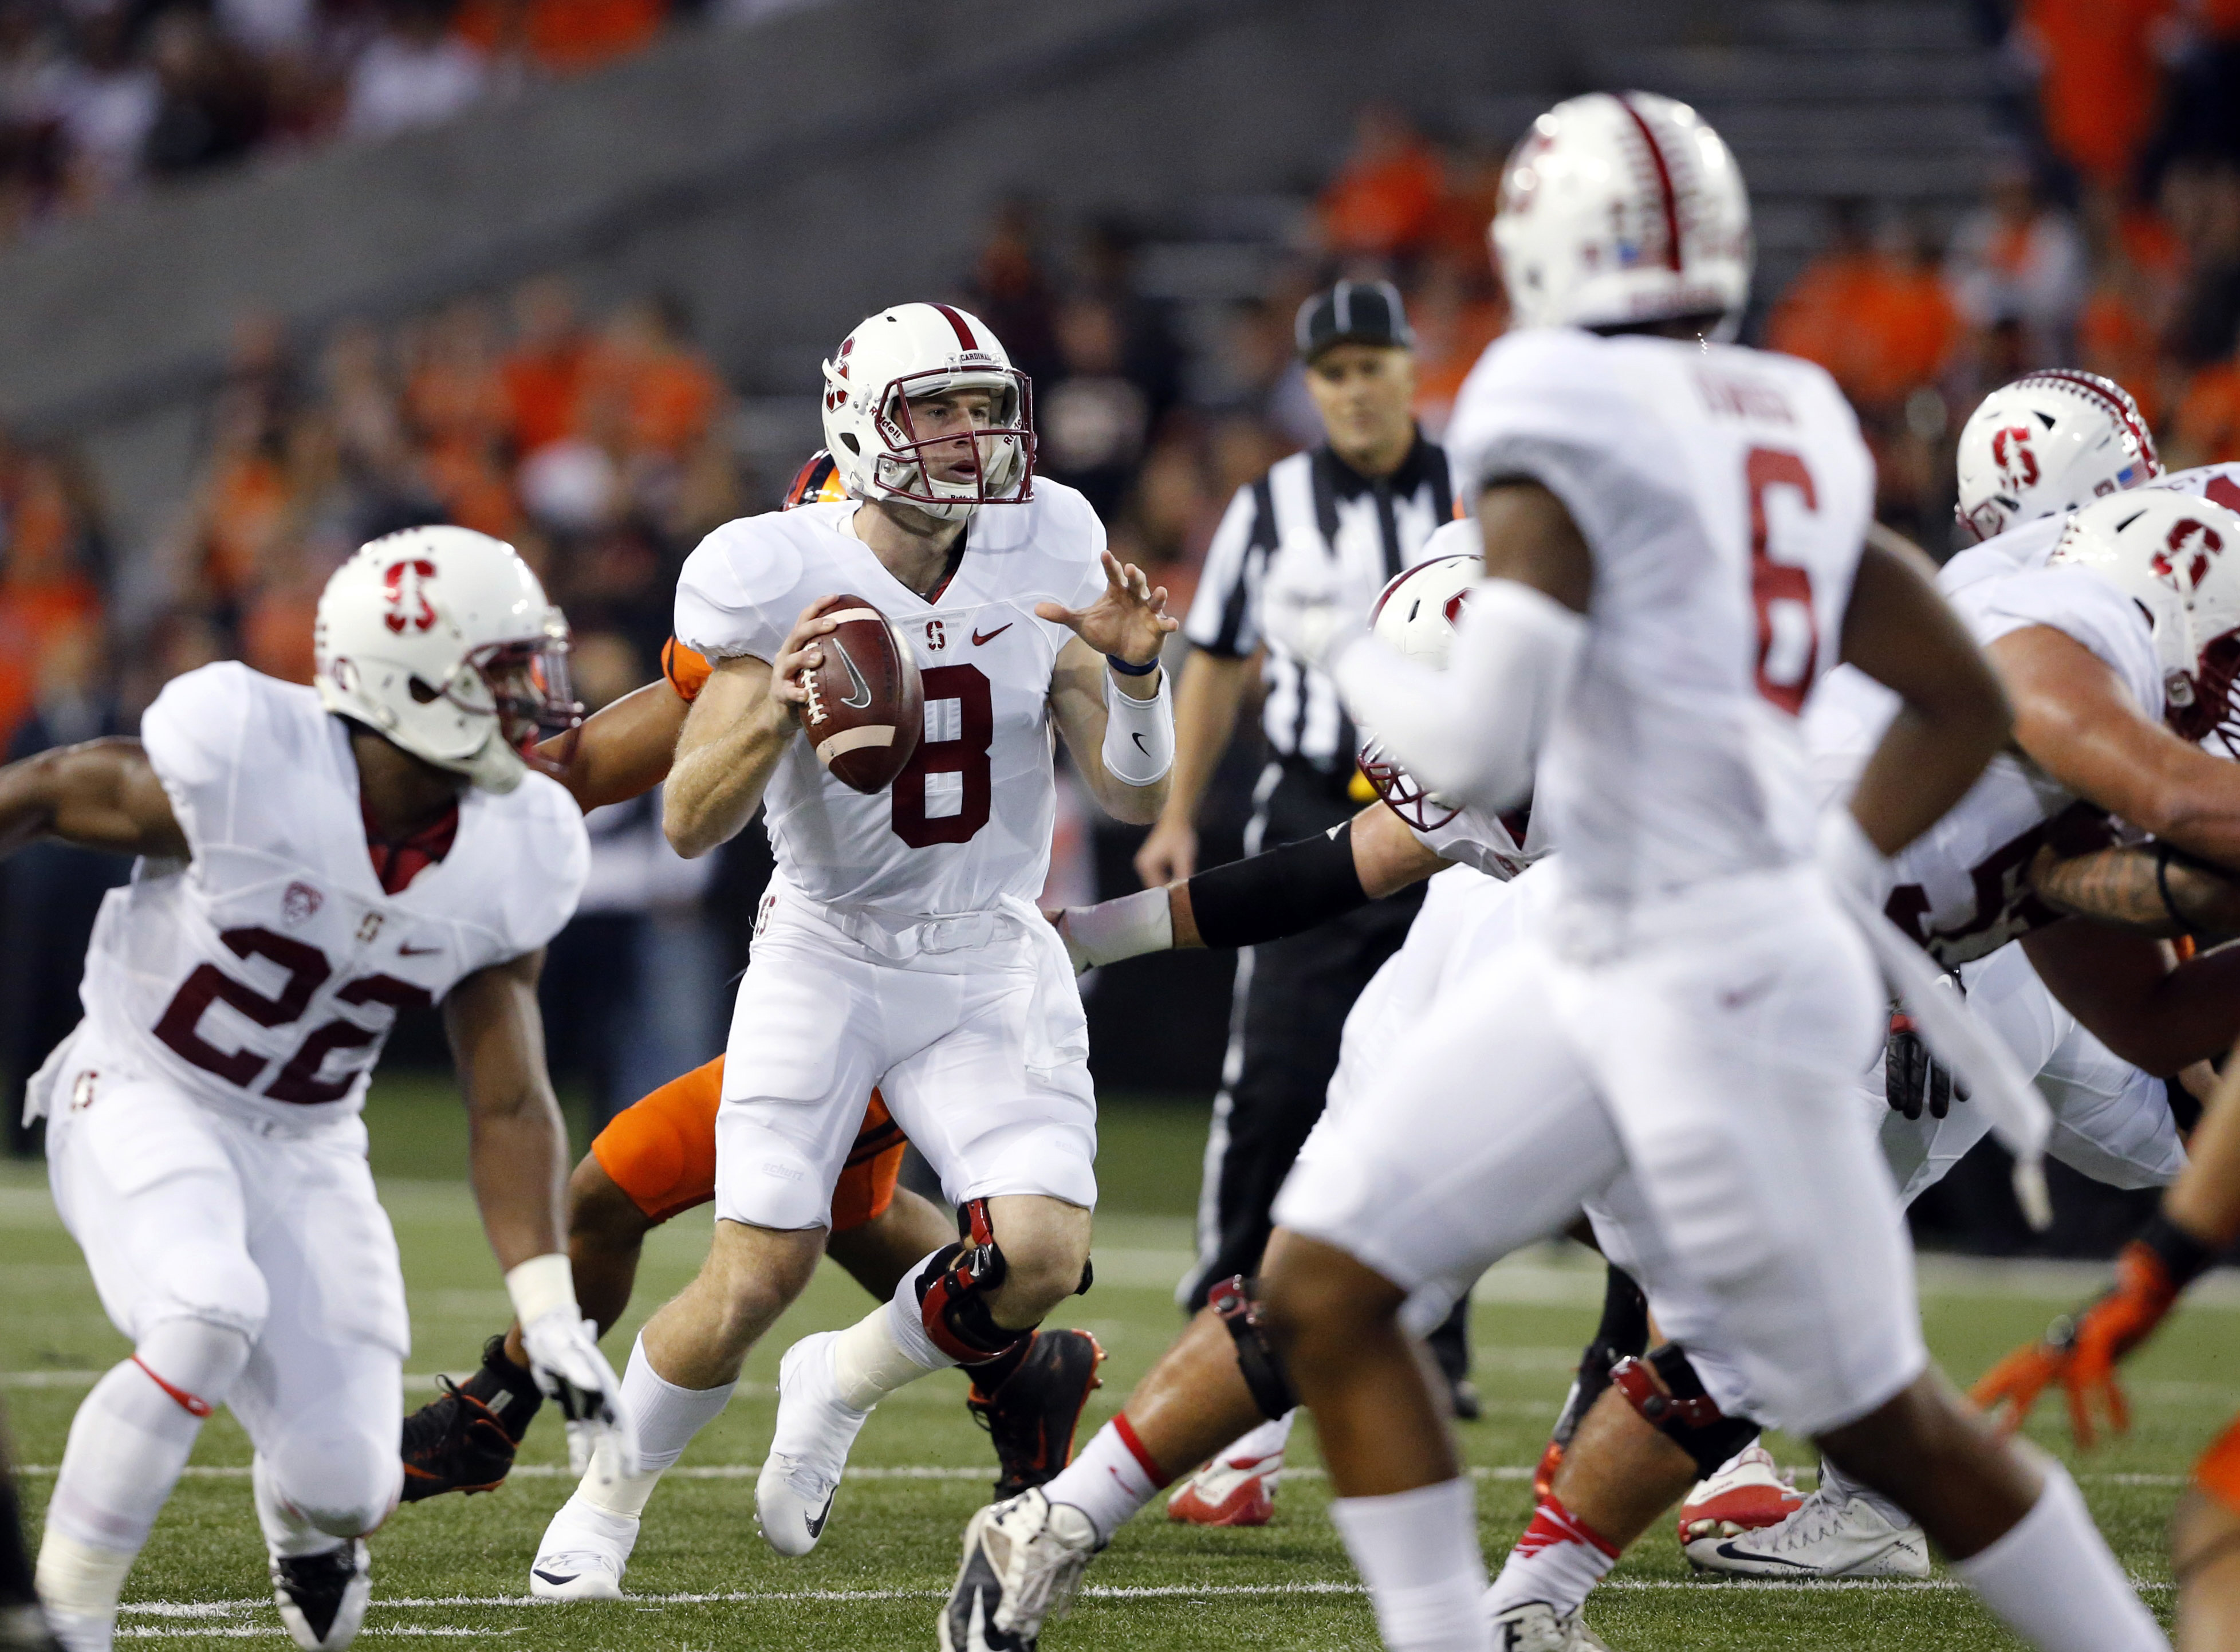 Stanford quarterback Kevin Hogan, center, looks for a receiver during the first half of an NCAA college football game against Oregon State in Corvallis, Ore., Friday, Sept. 25, 2015. (AP Photo/Timothy J. Gonzalez)